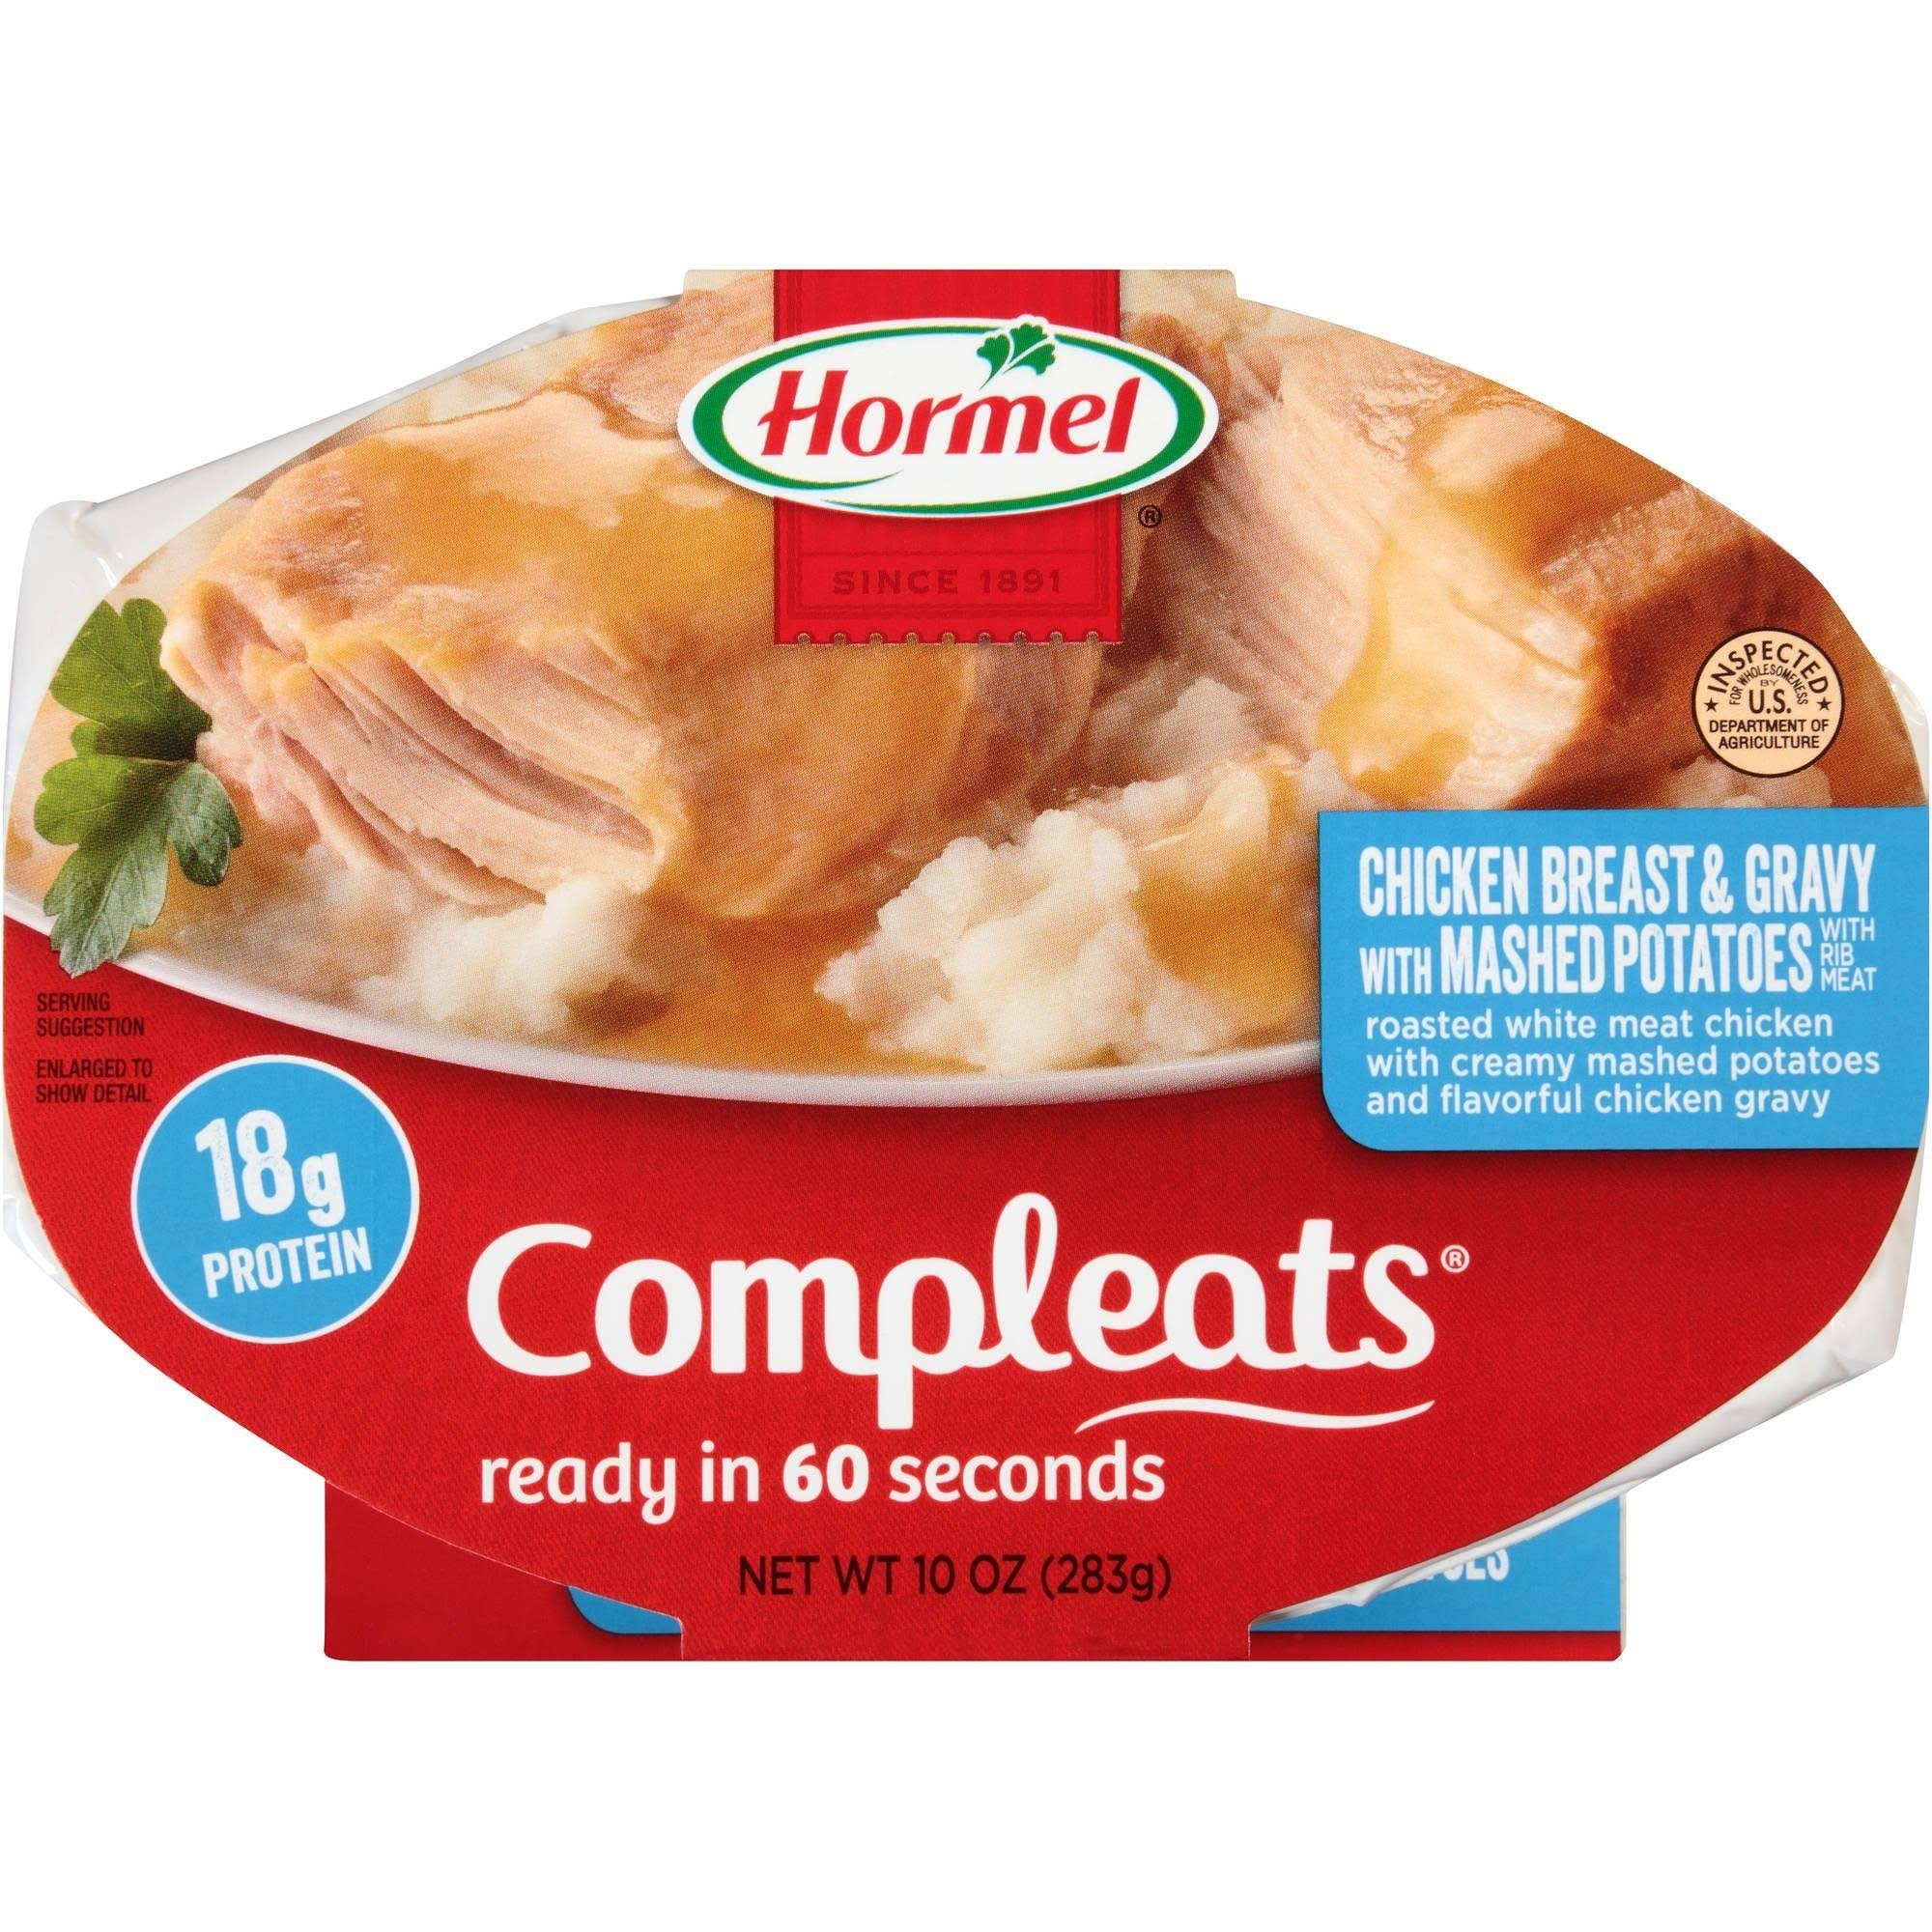 Hormel Compleats Ready Meals - Chicken Breast & Gravy with Mashed Potatoes, 10oz